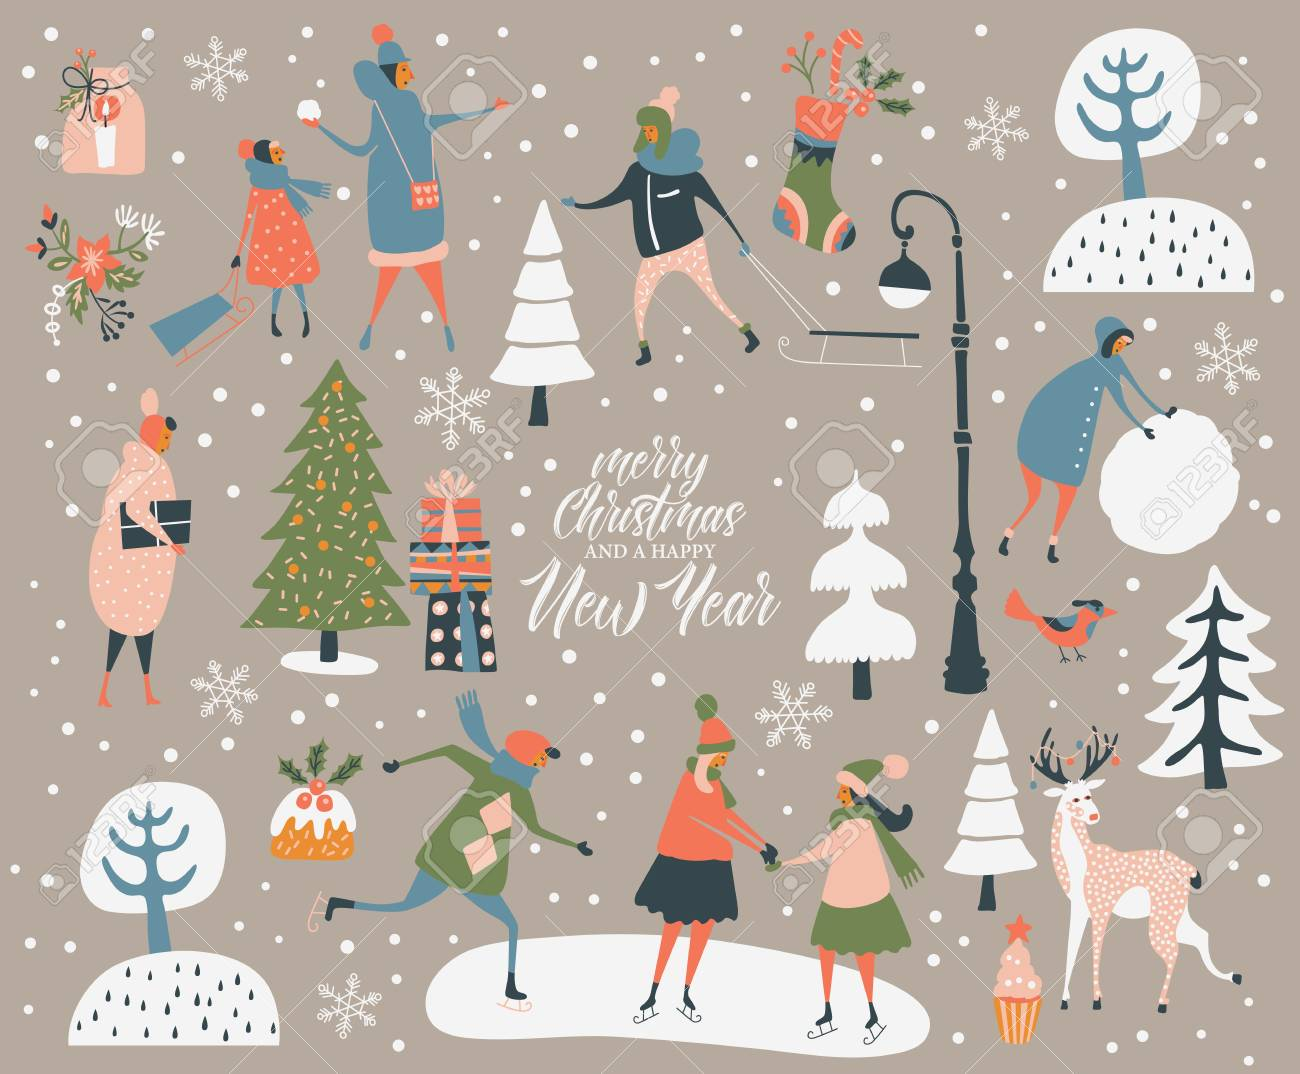 Merry Christmas and happy New year vector greeting card with winter games and people. Celebration template with playing cute people in vintage style. - 88762192